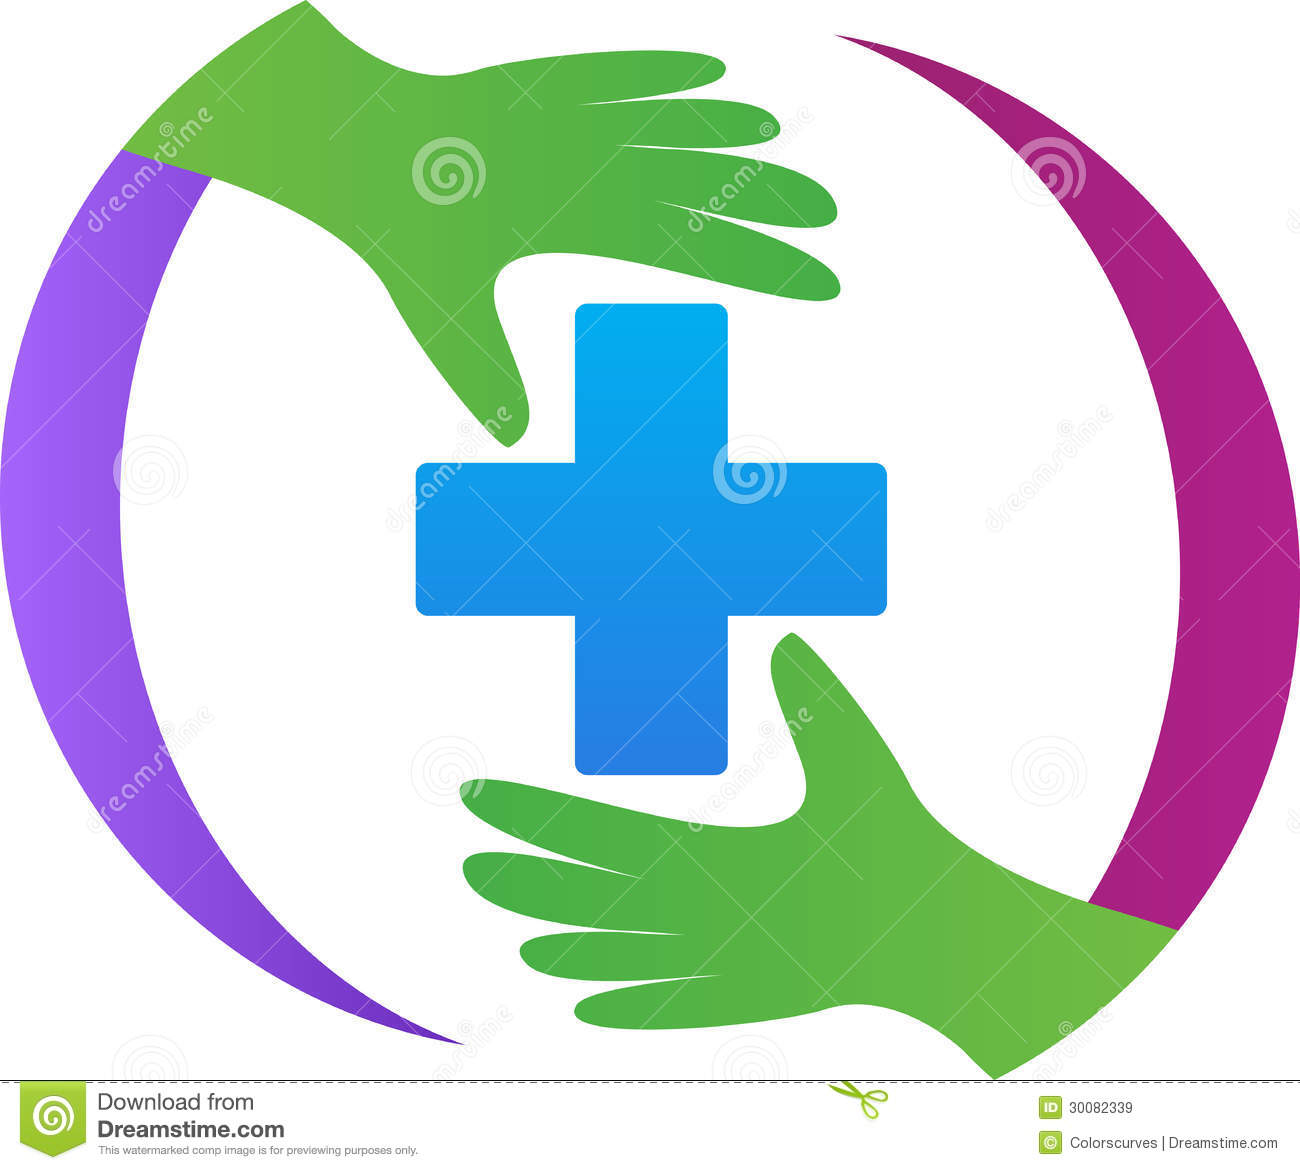 first aid logo design - photo #36